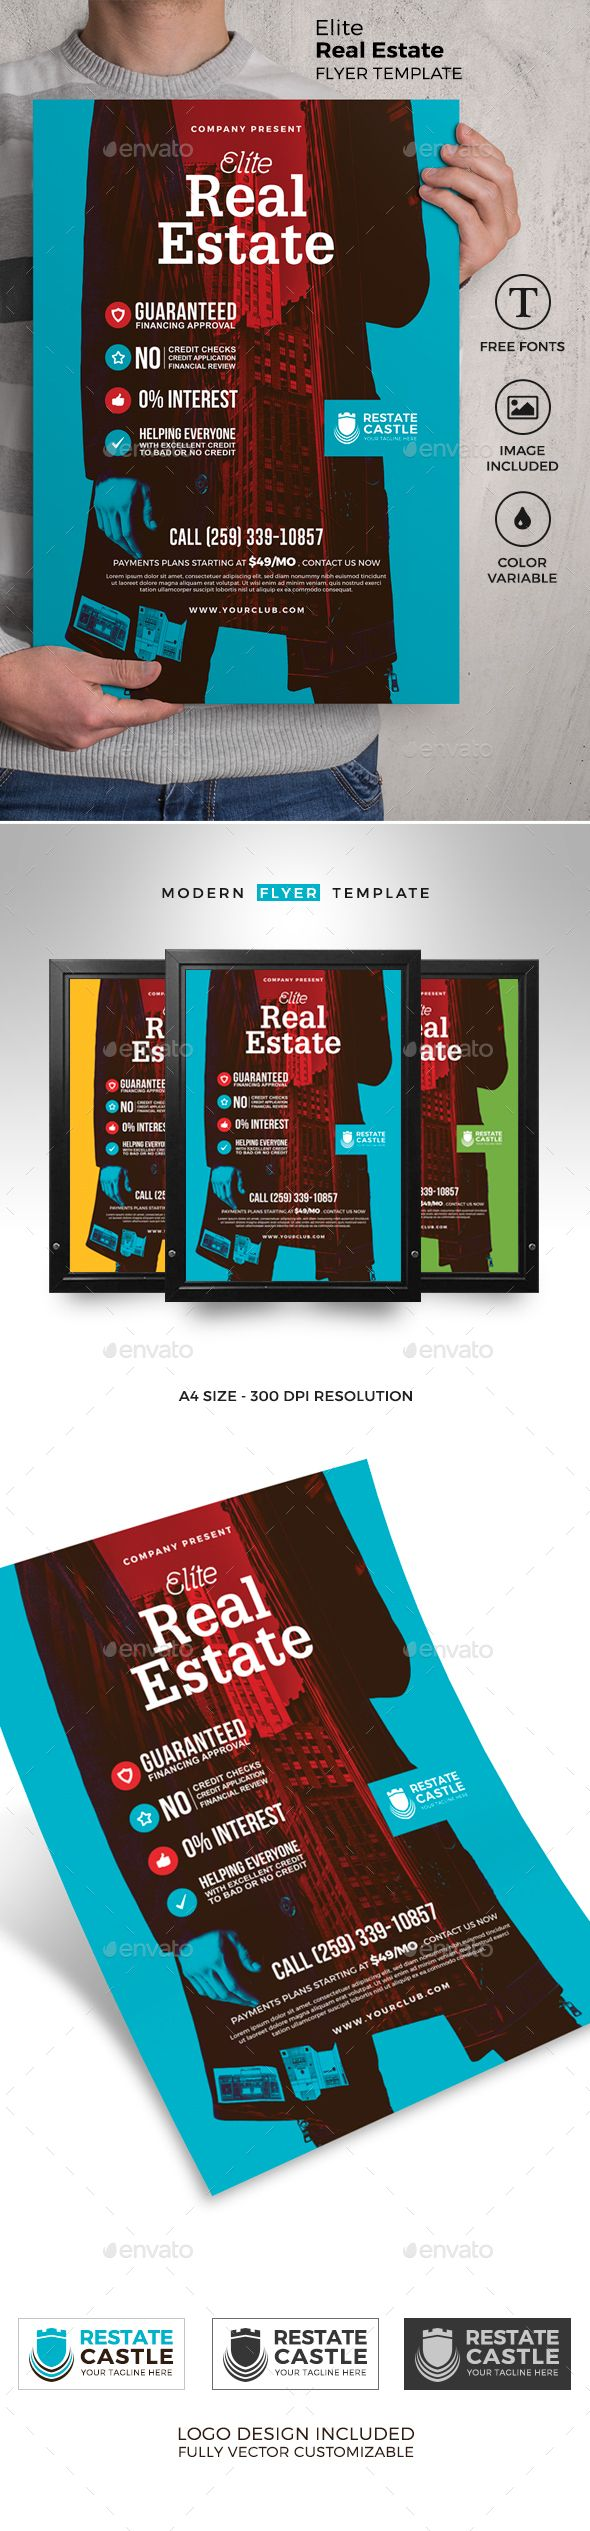 Real Estate Flyer Template Photoshop Psd Offer Sale Download